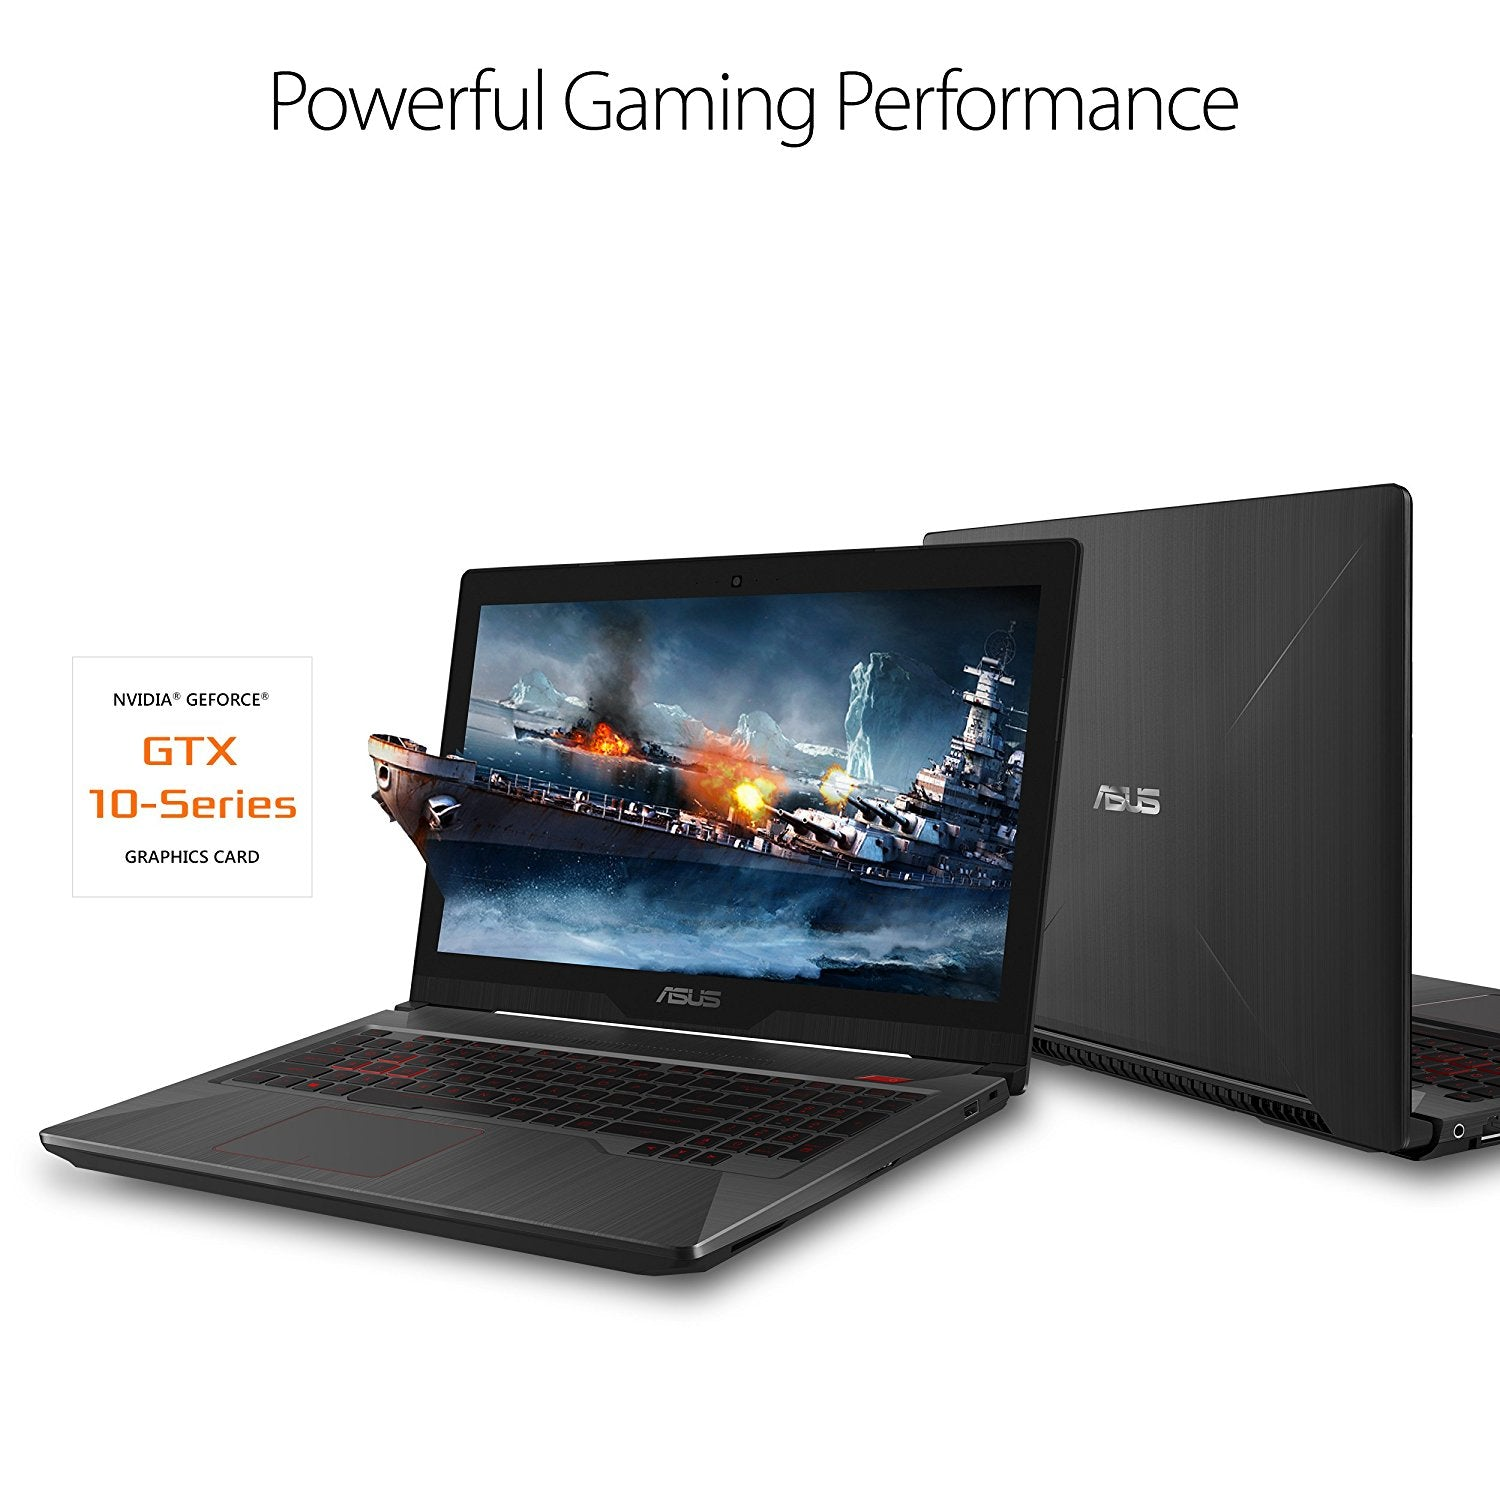 Asus Fx503vm 15 6 Powerful Gaming Laptop 2 8 Ghz Intel Core I7 7700h The Mac Stop